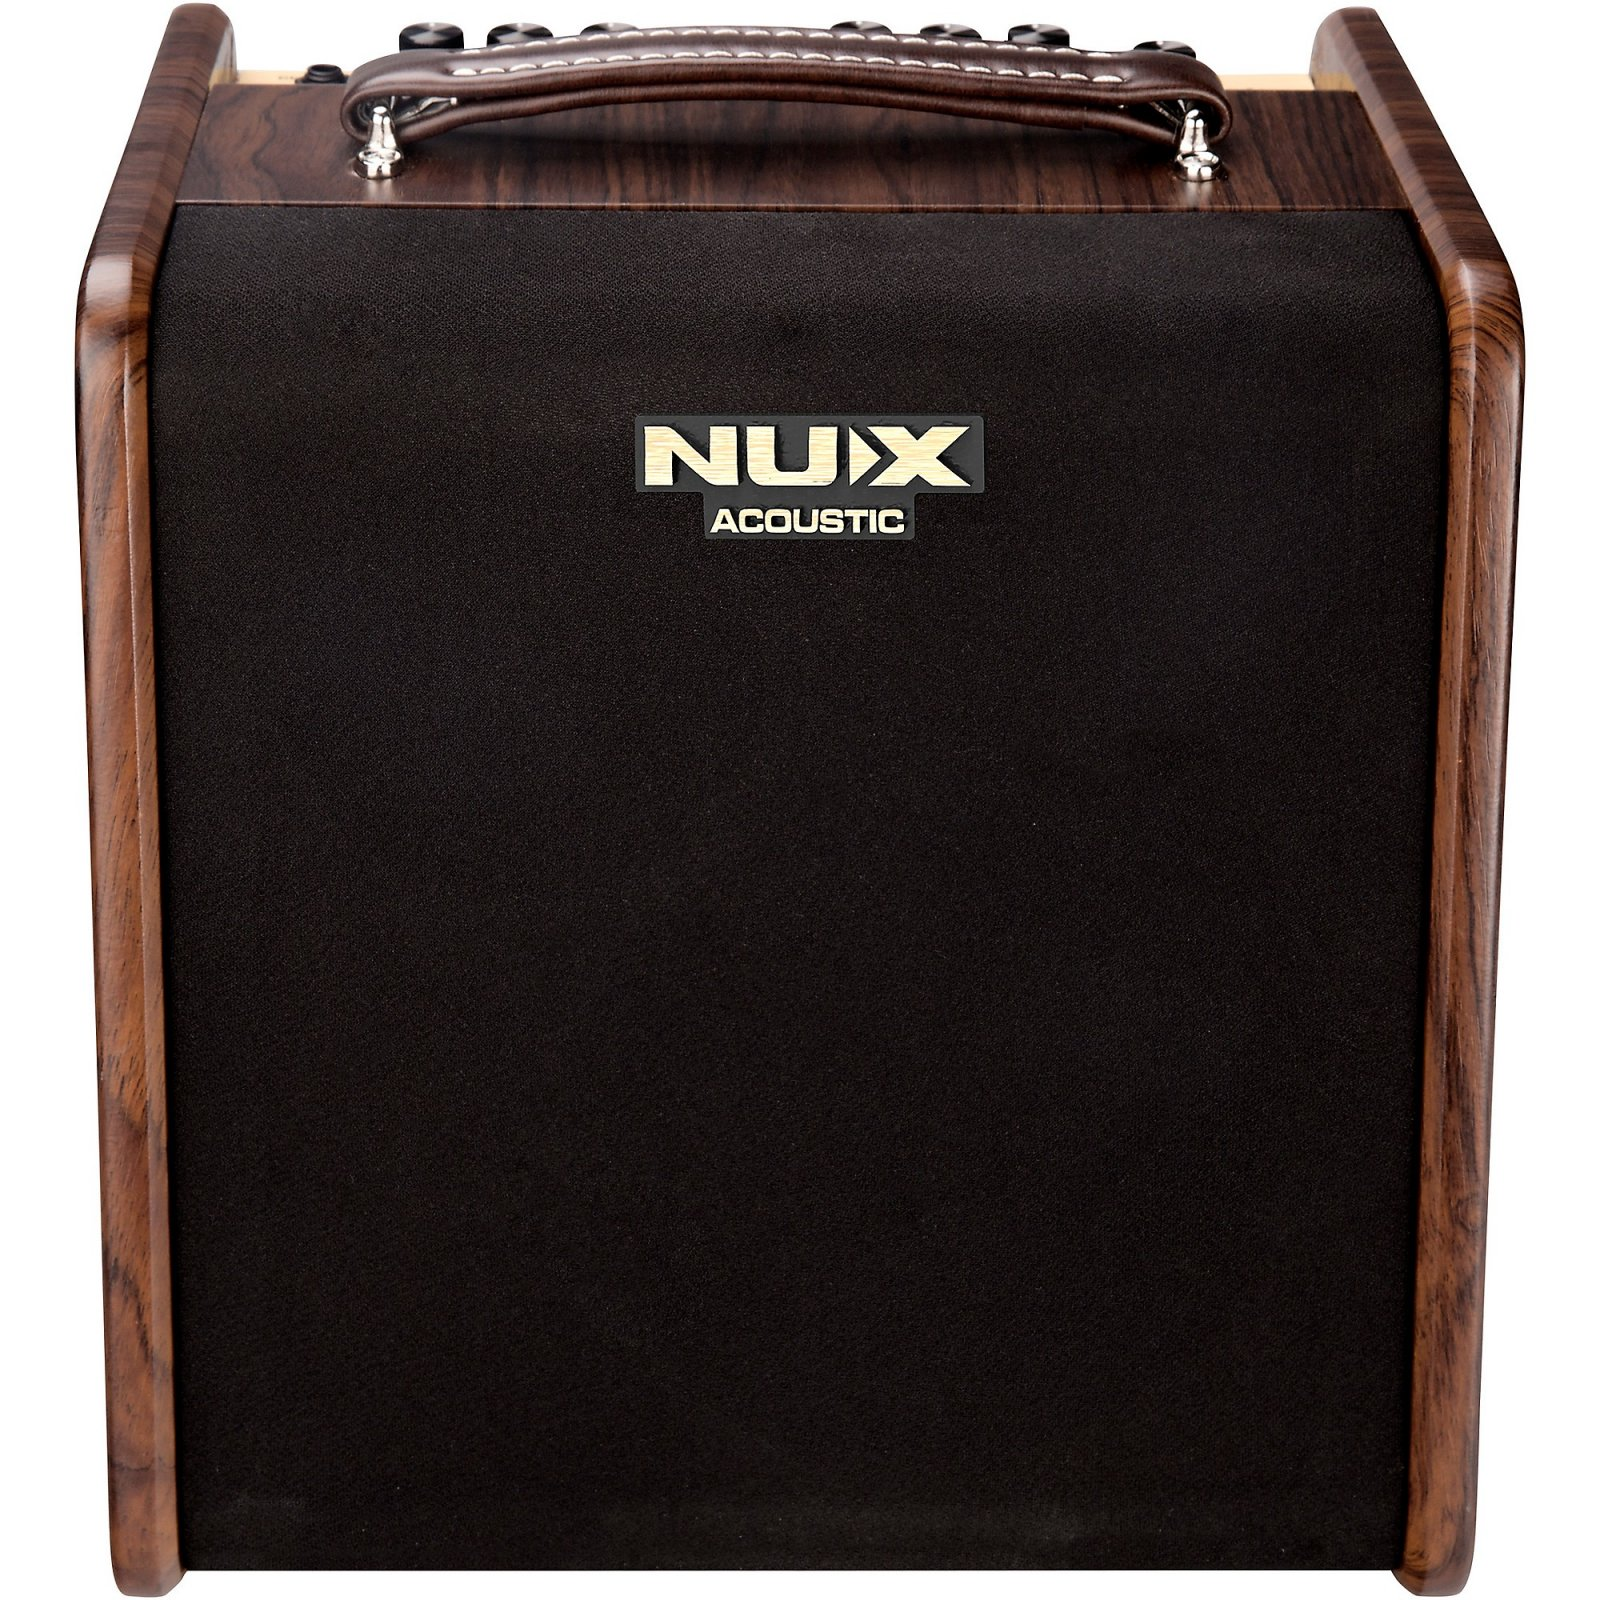 NUX AC-50 Stageman Acoustic Guitar Amplifier w/ Effects and Blue Tooth Foot Pedal